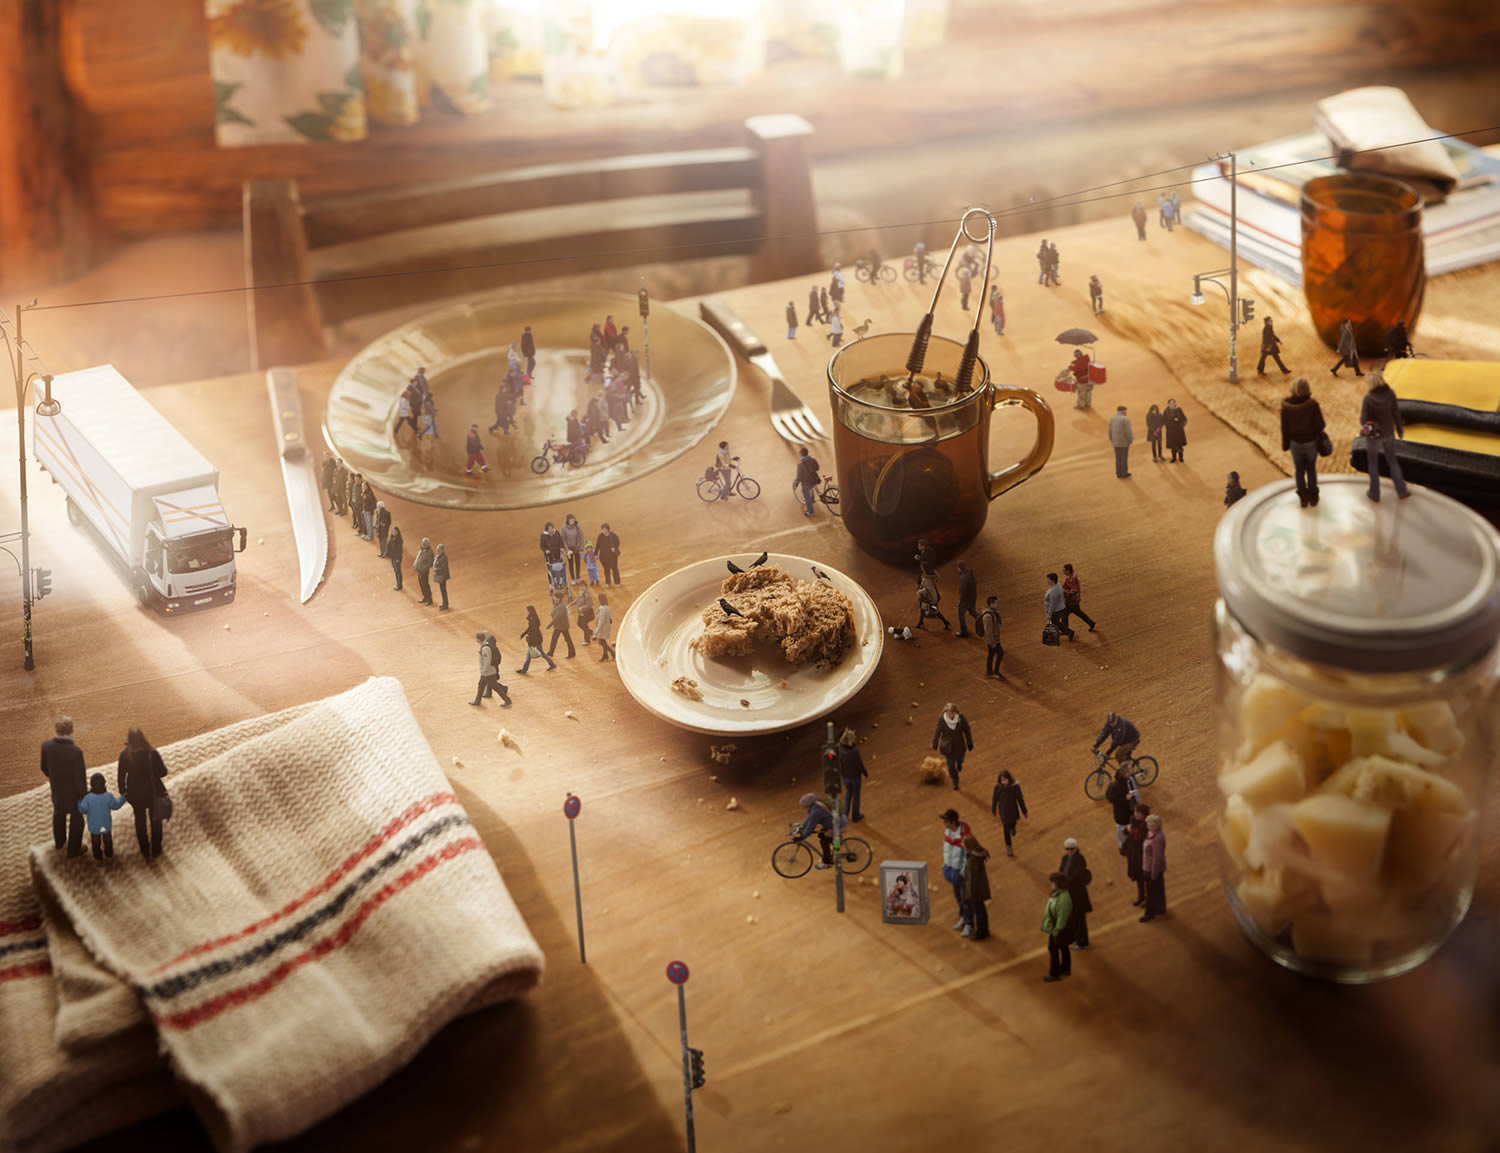 miniature people walking on kitchen table, by manuel archain